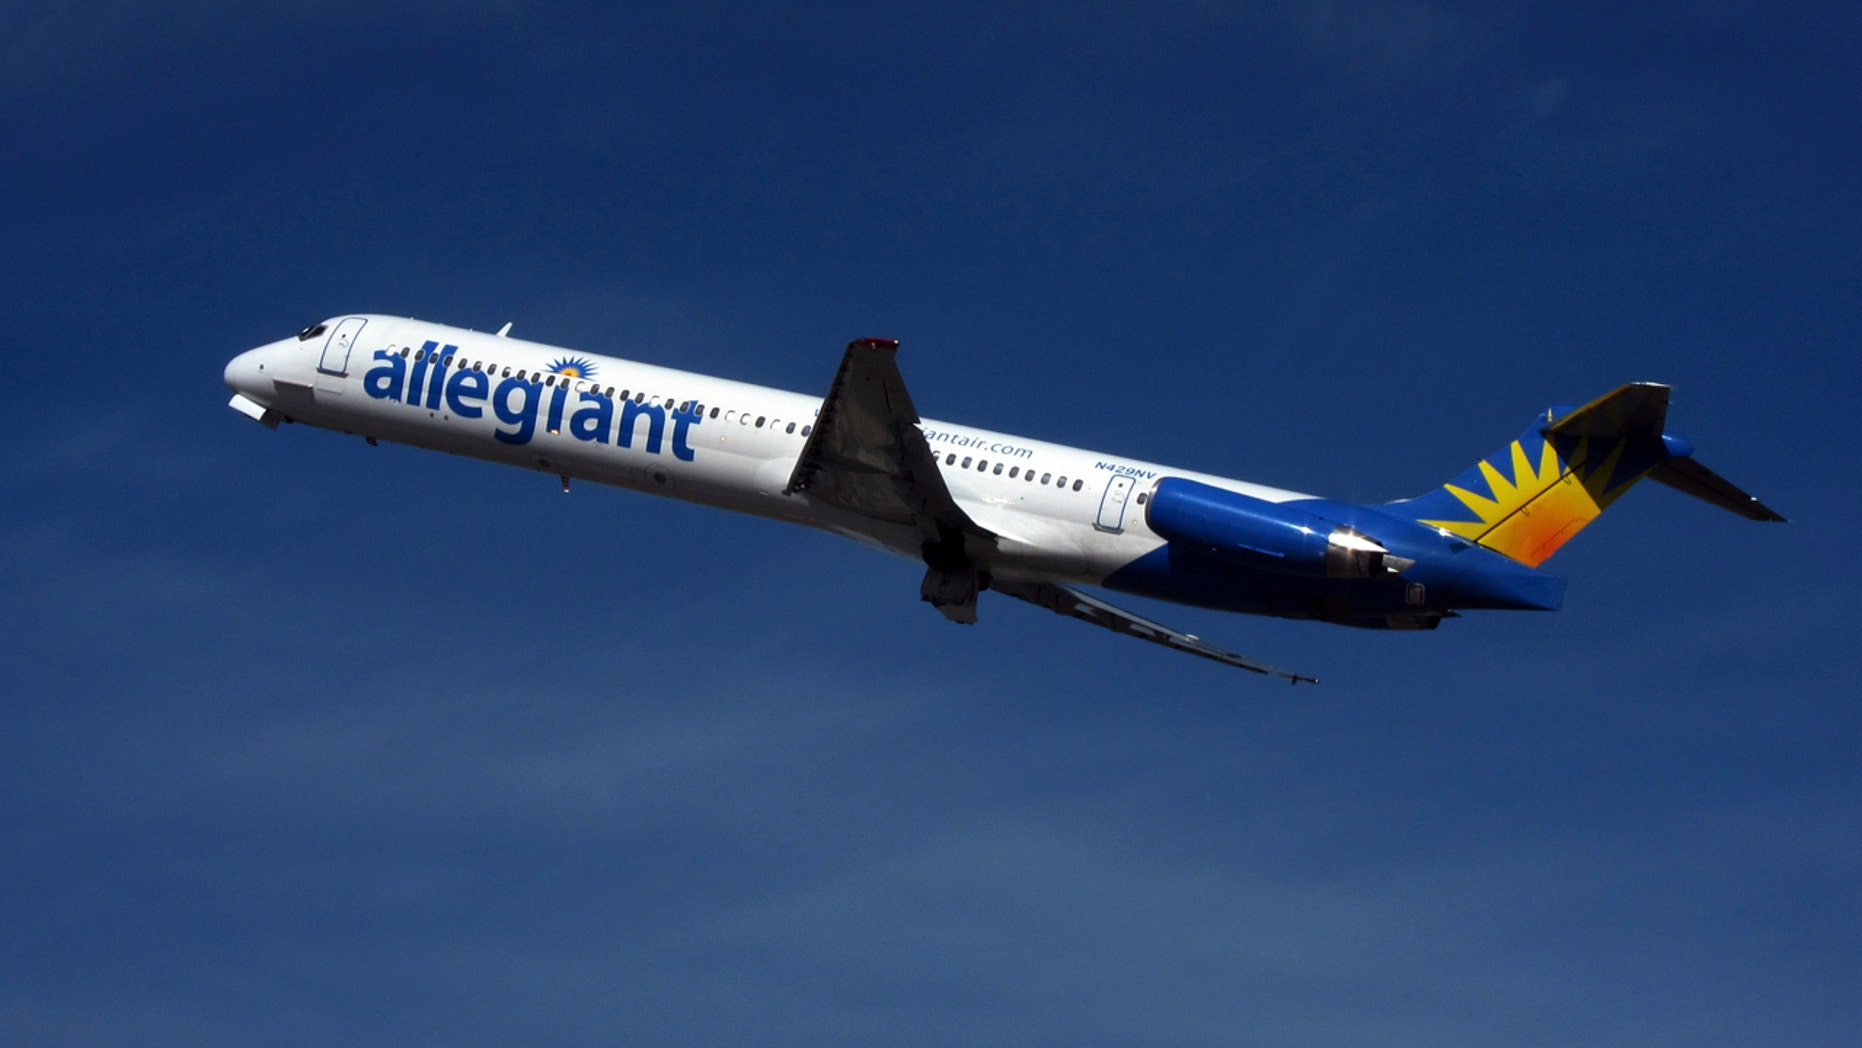 Two sisters have accused Allegiant Air of causing them to miss their father's final moments after being kicked off a flight.